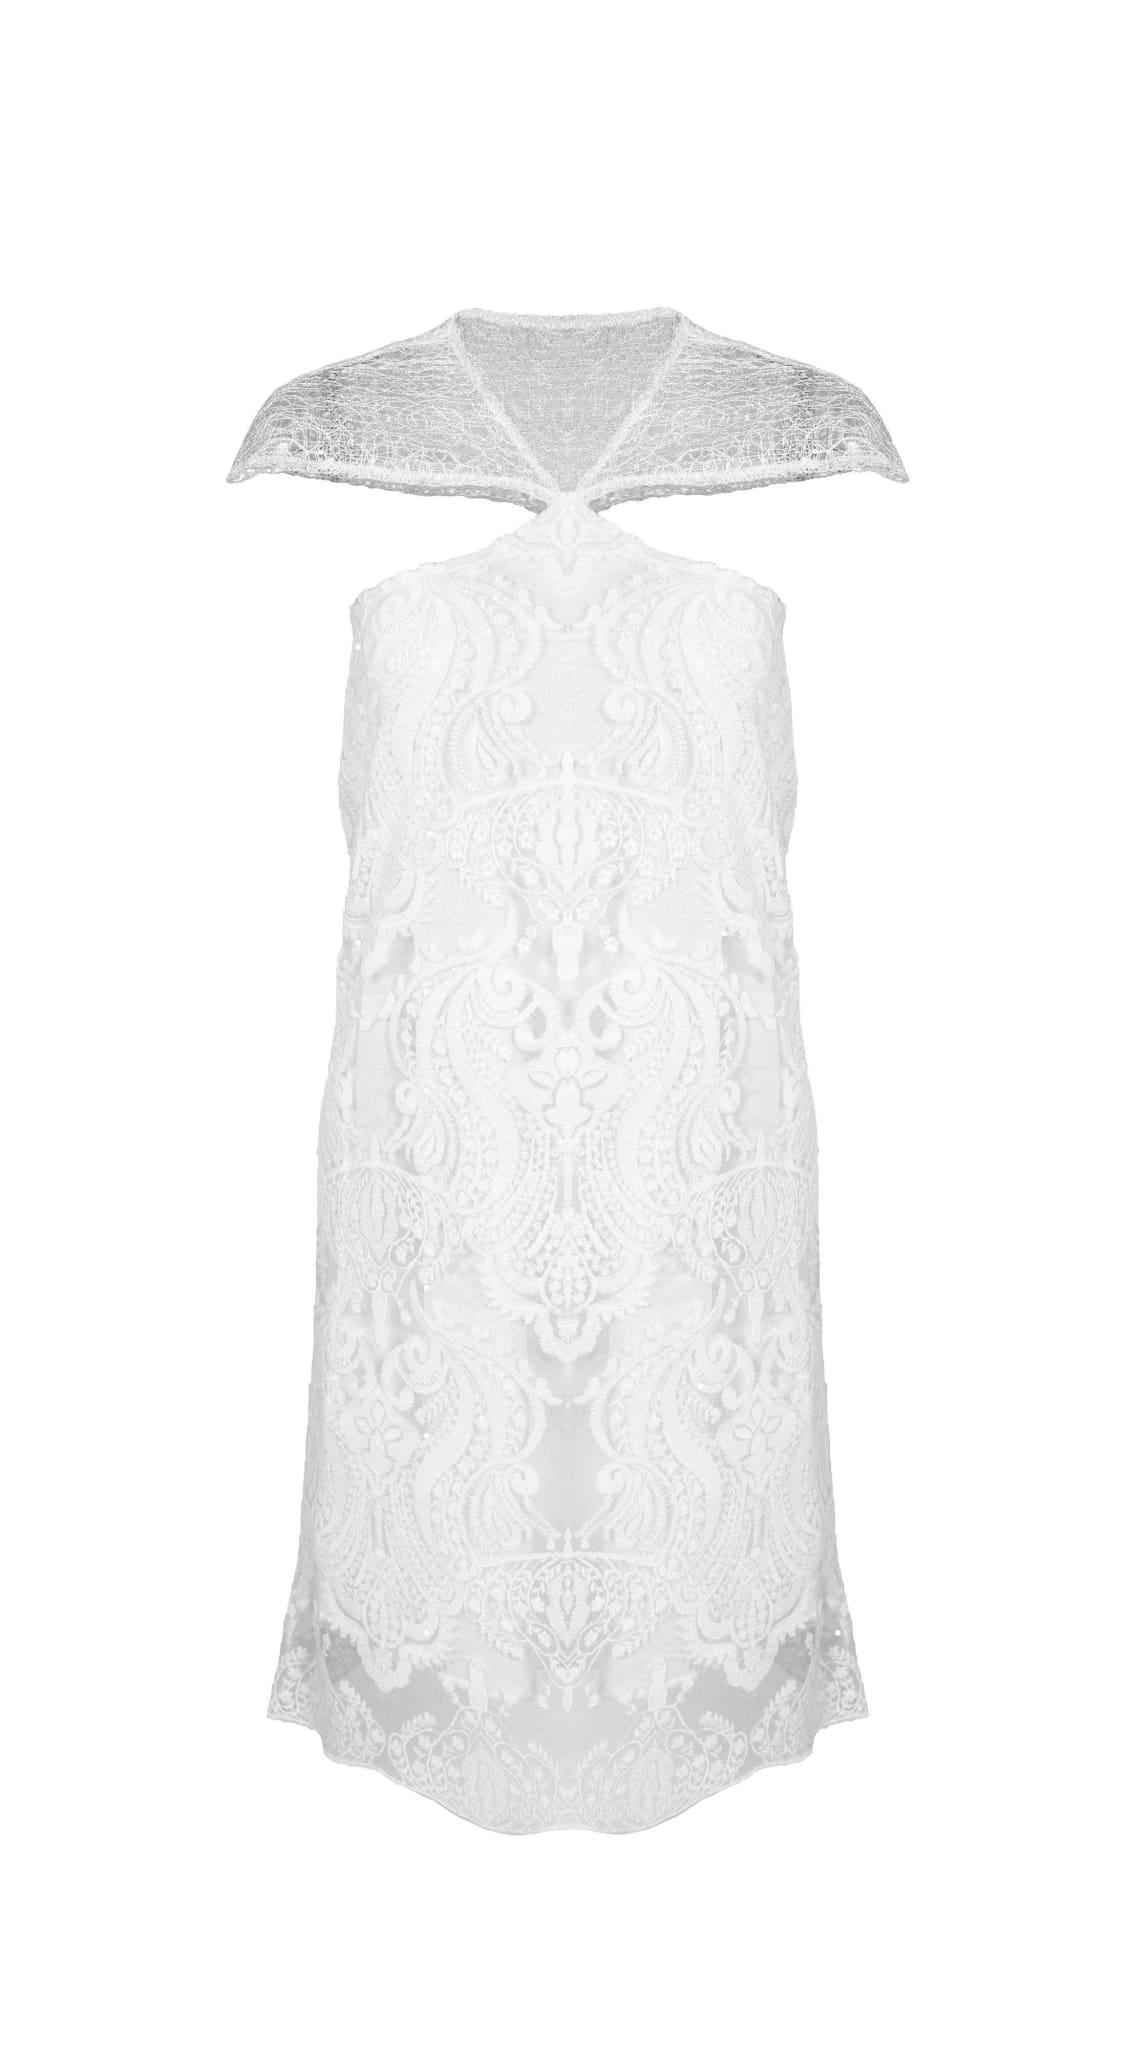 Pasiphea White Lace Dress by San Francisco brand SF Couture sustainable fashion made in the USA | Nineteenth Amendment